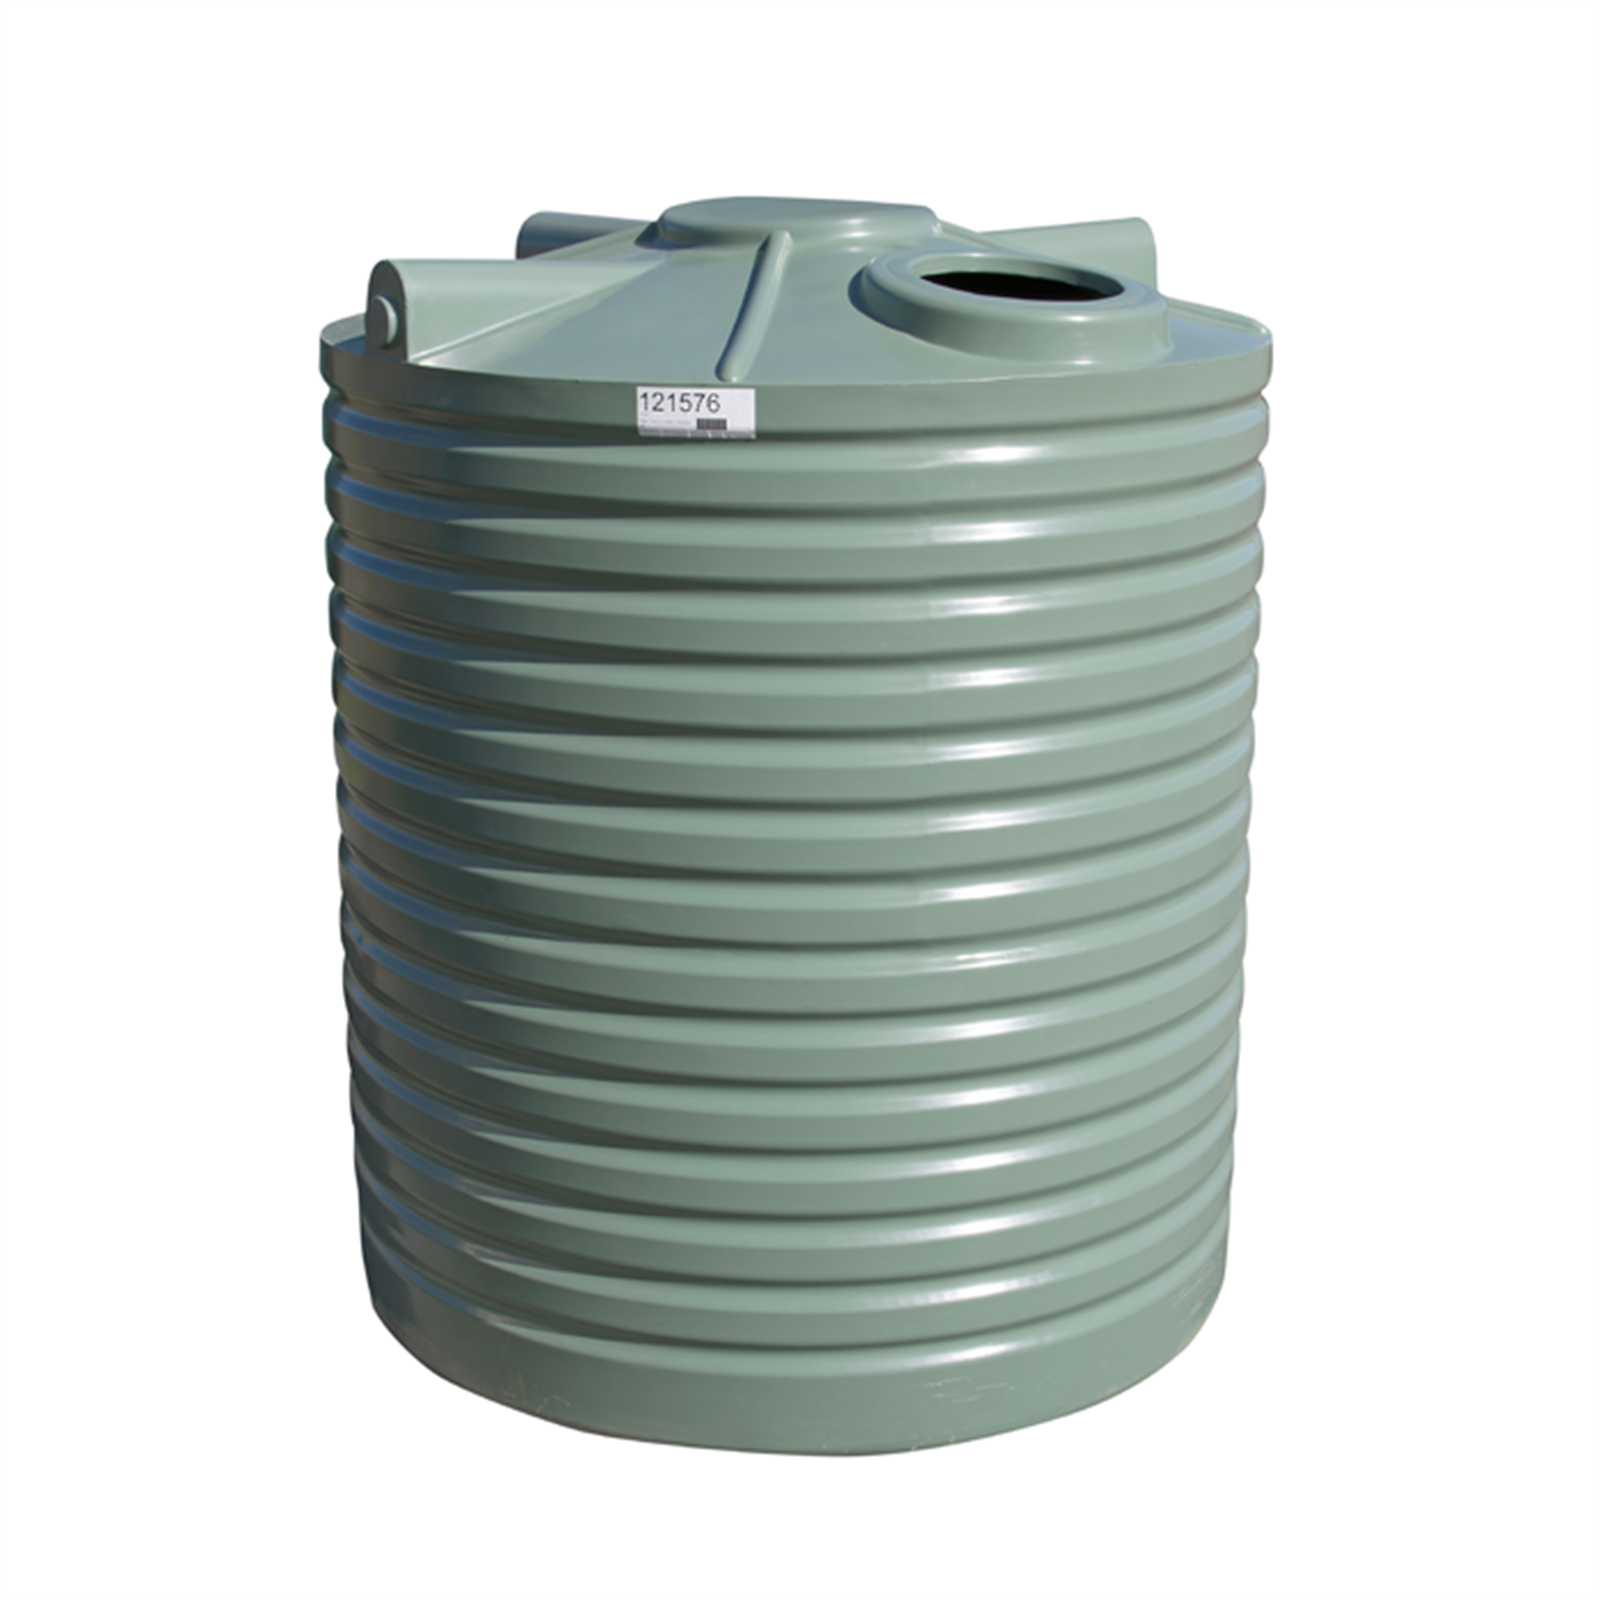 Clark Tanks 5000L Tall Round Poly Water Tank.